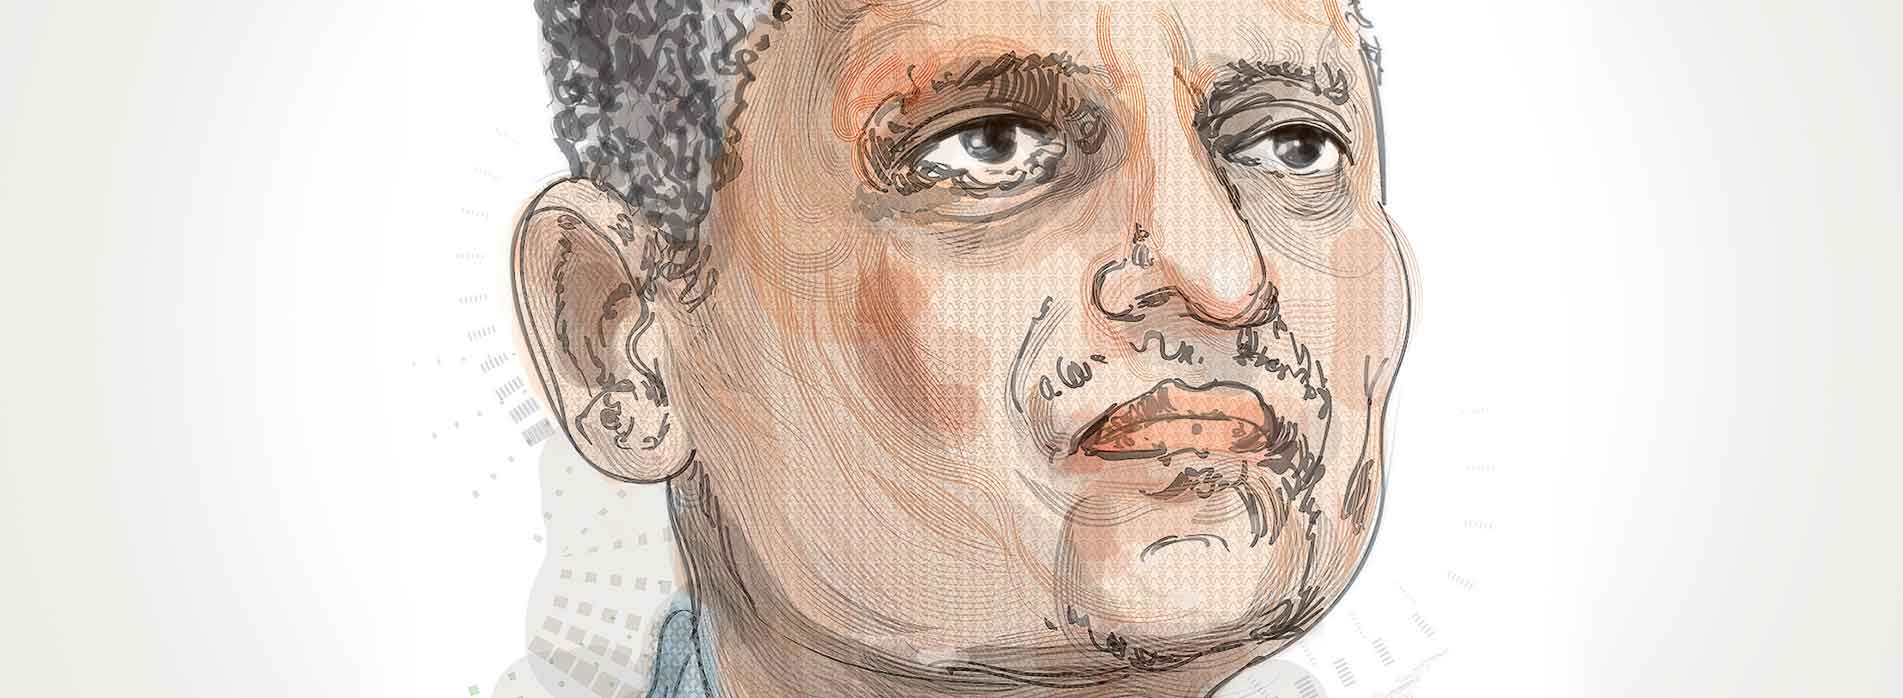 Godse as Deshbhakt: The New Normal